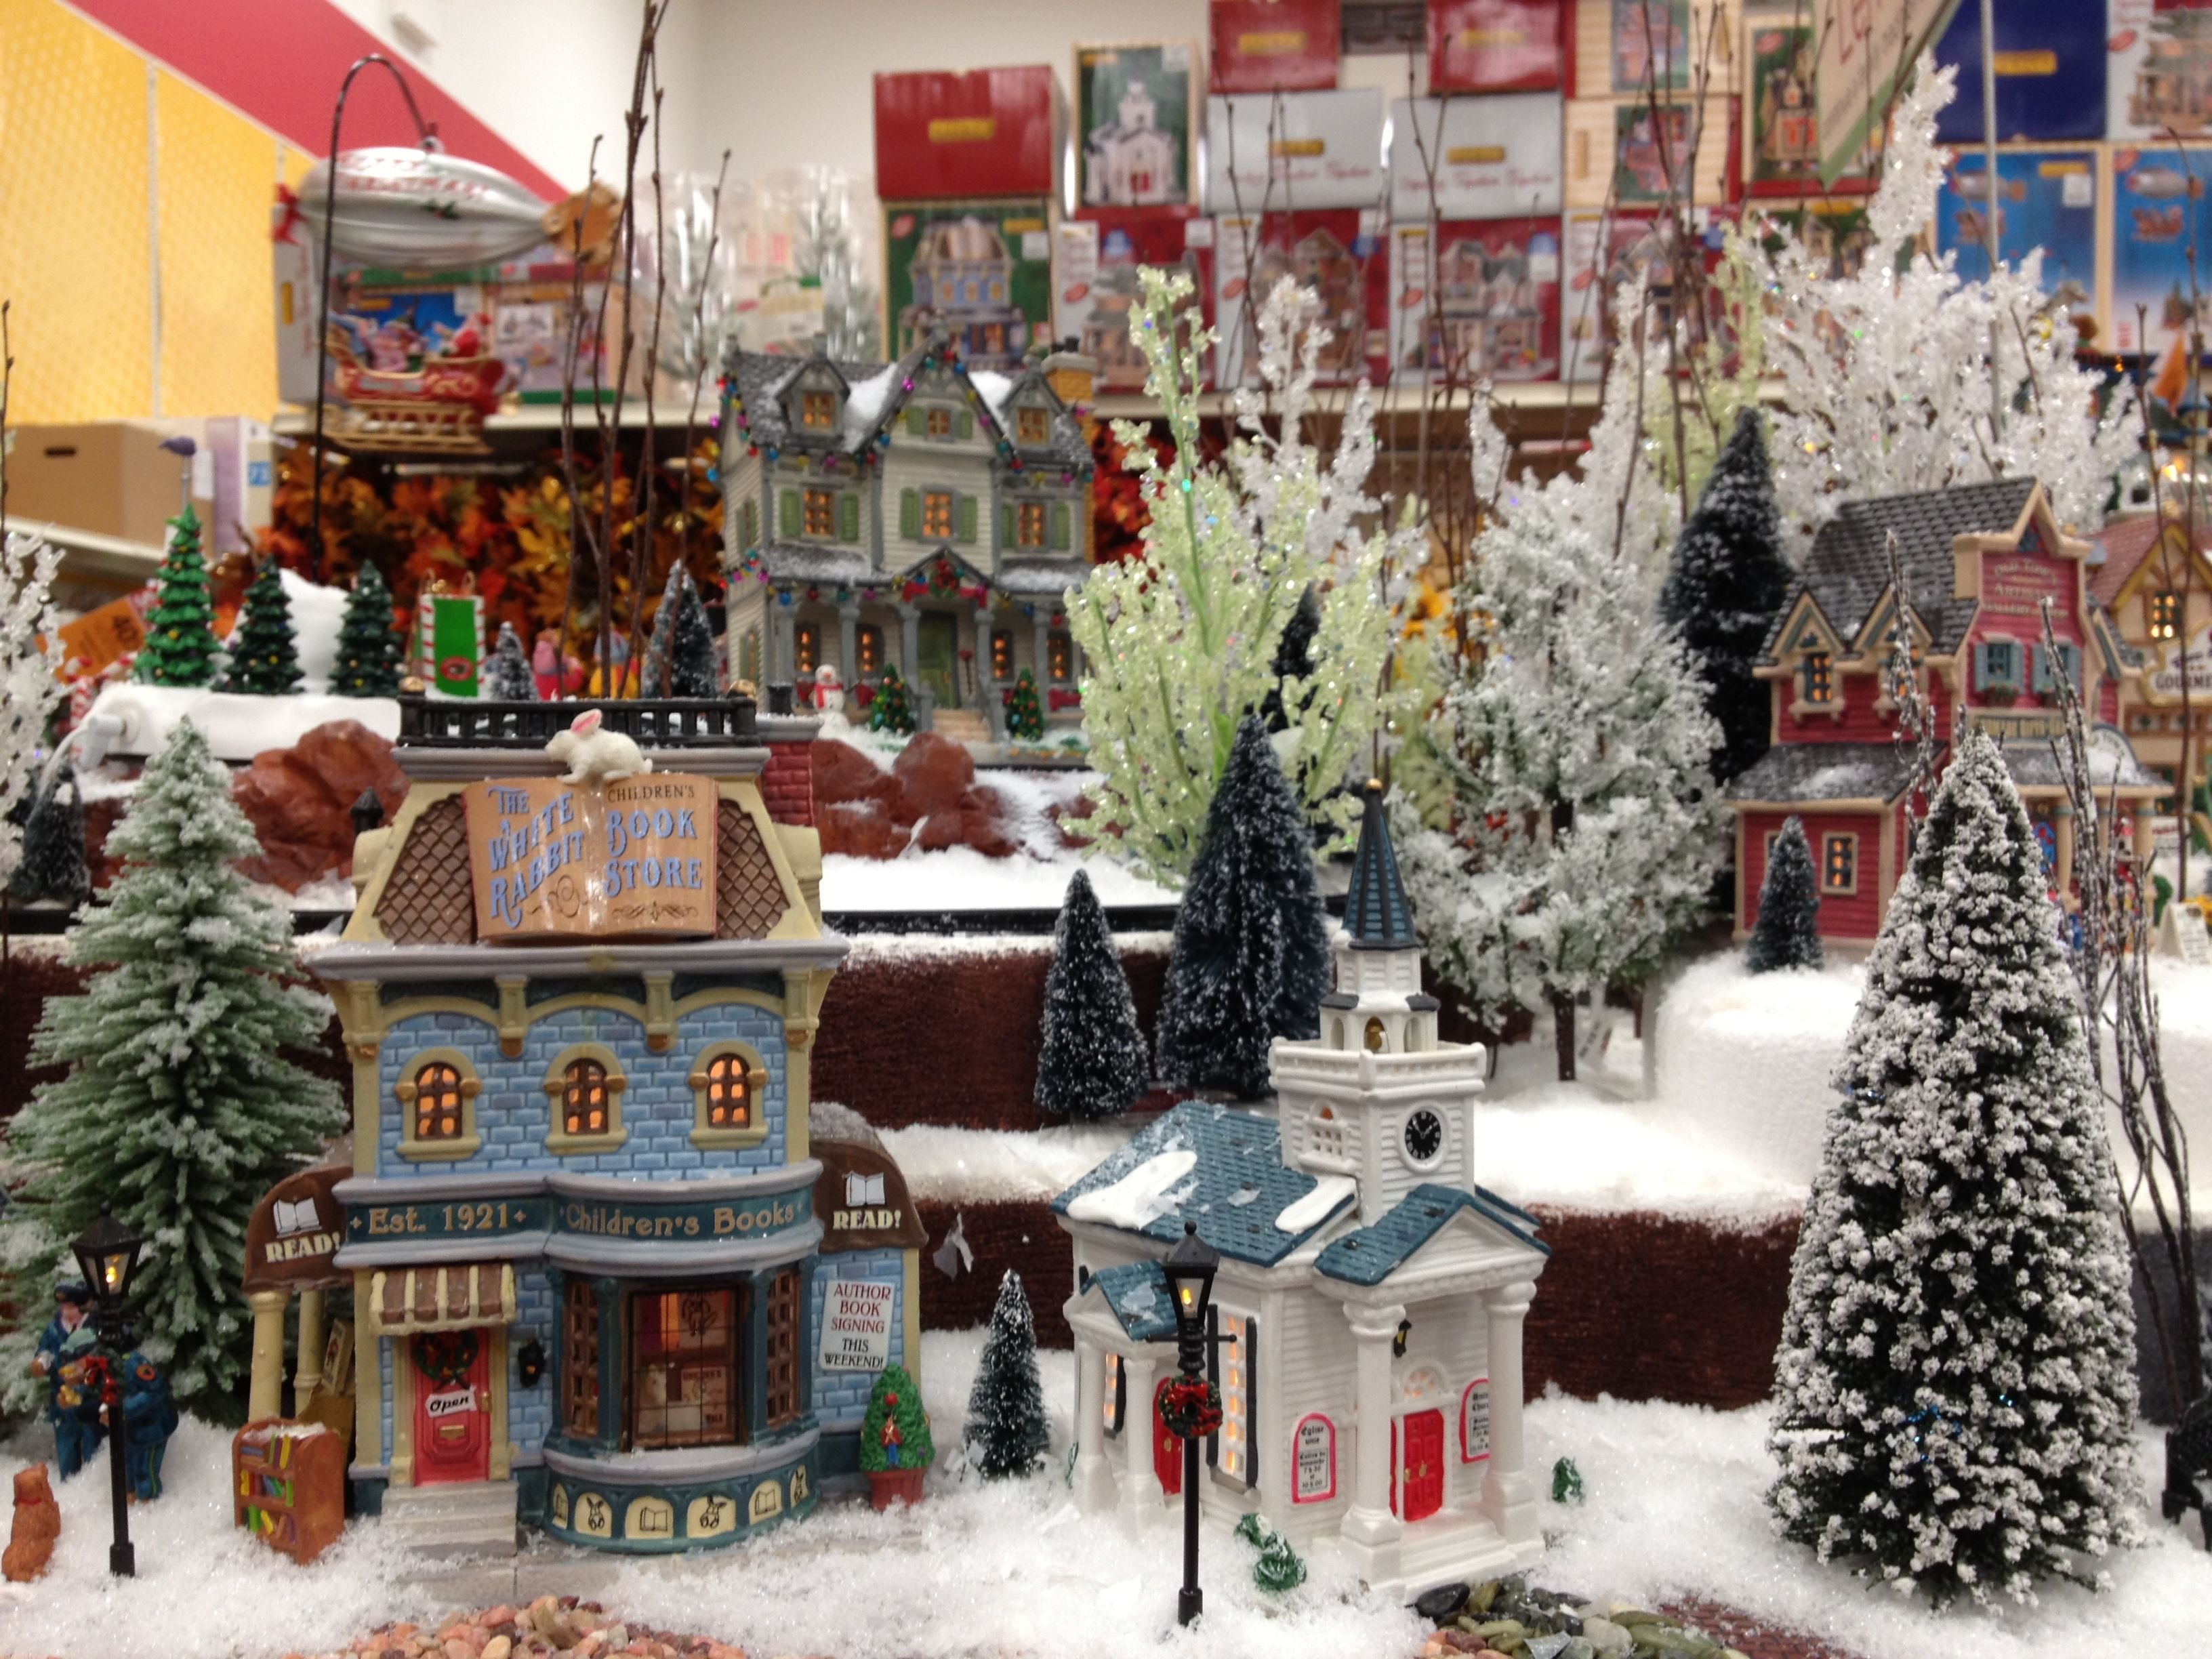 christmas lemax display 2012 at michaels love the foamledge display - Christmas Village Sets Michaels